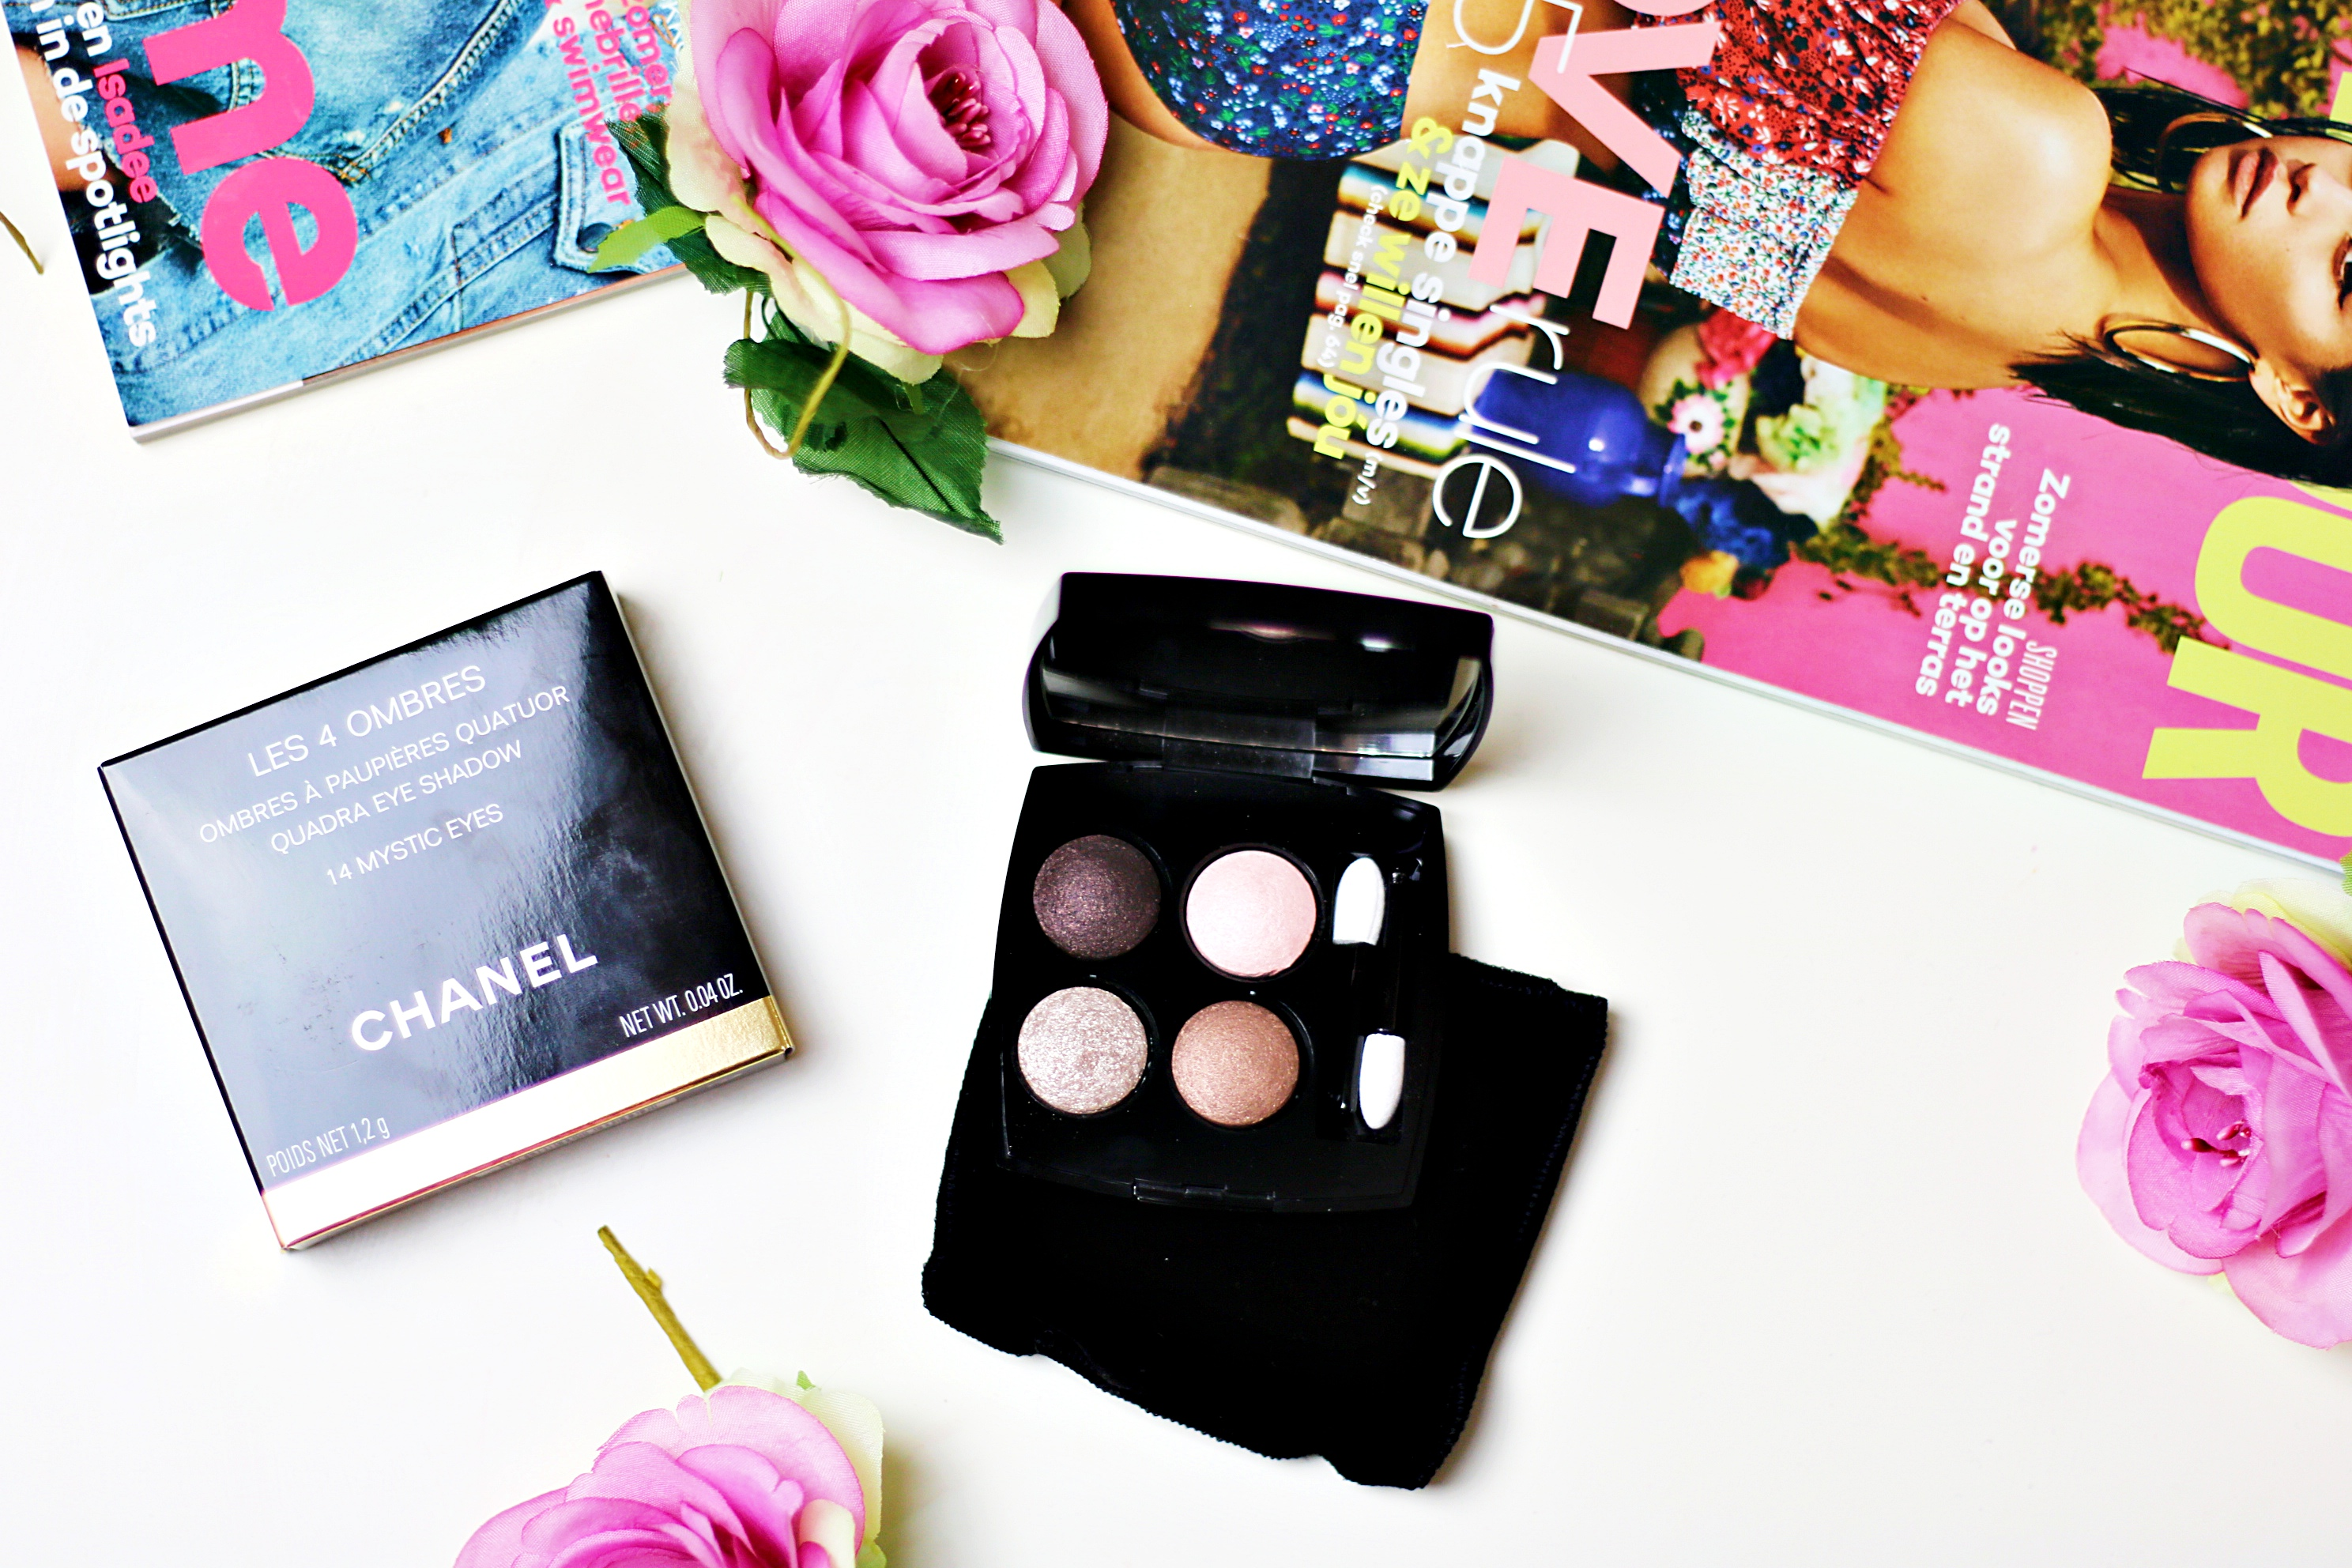 Chanel Les 4 Ombres Eyeshadow Palette 14 Mystic Eyes